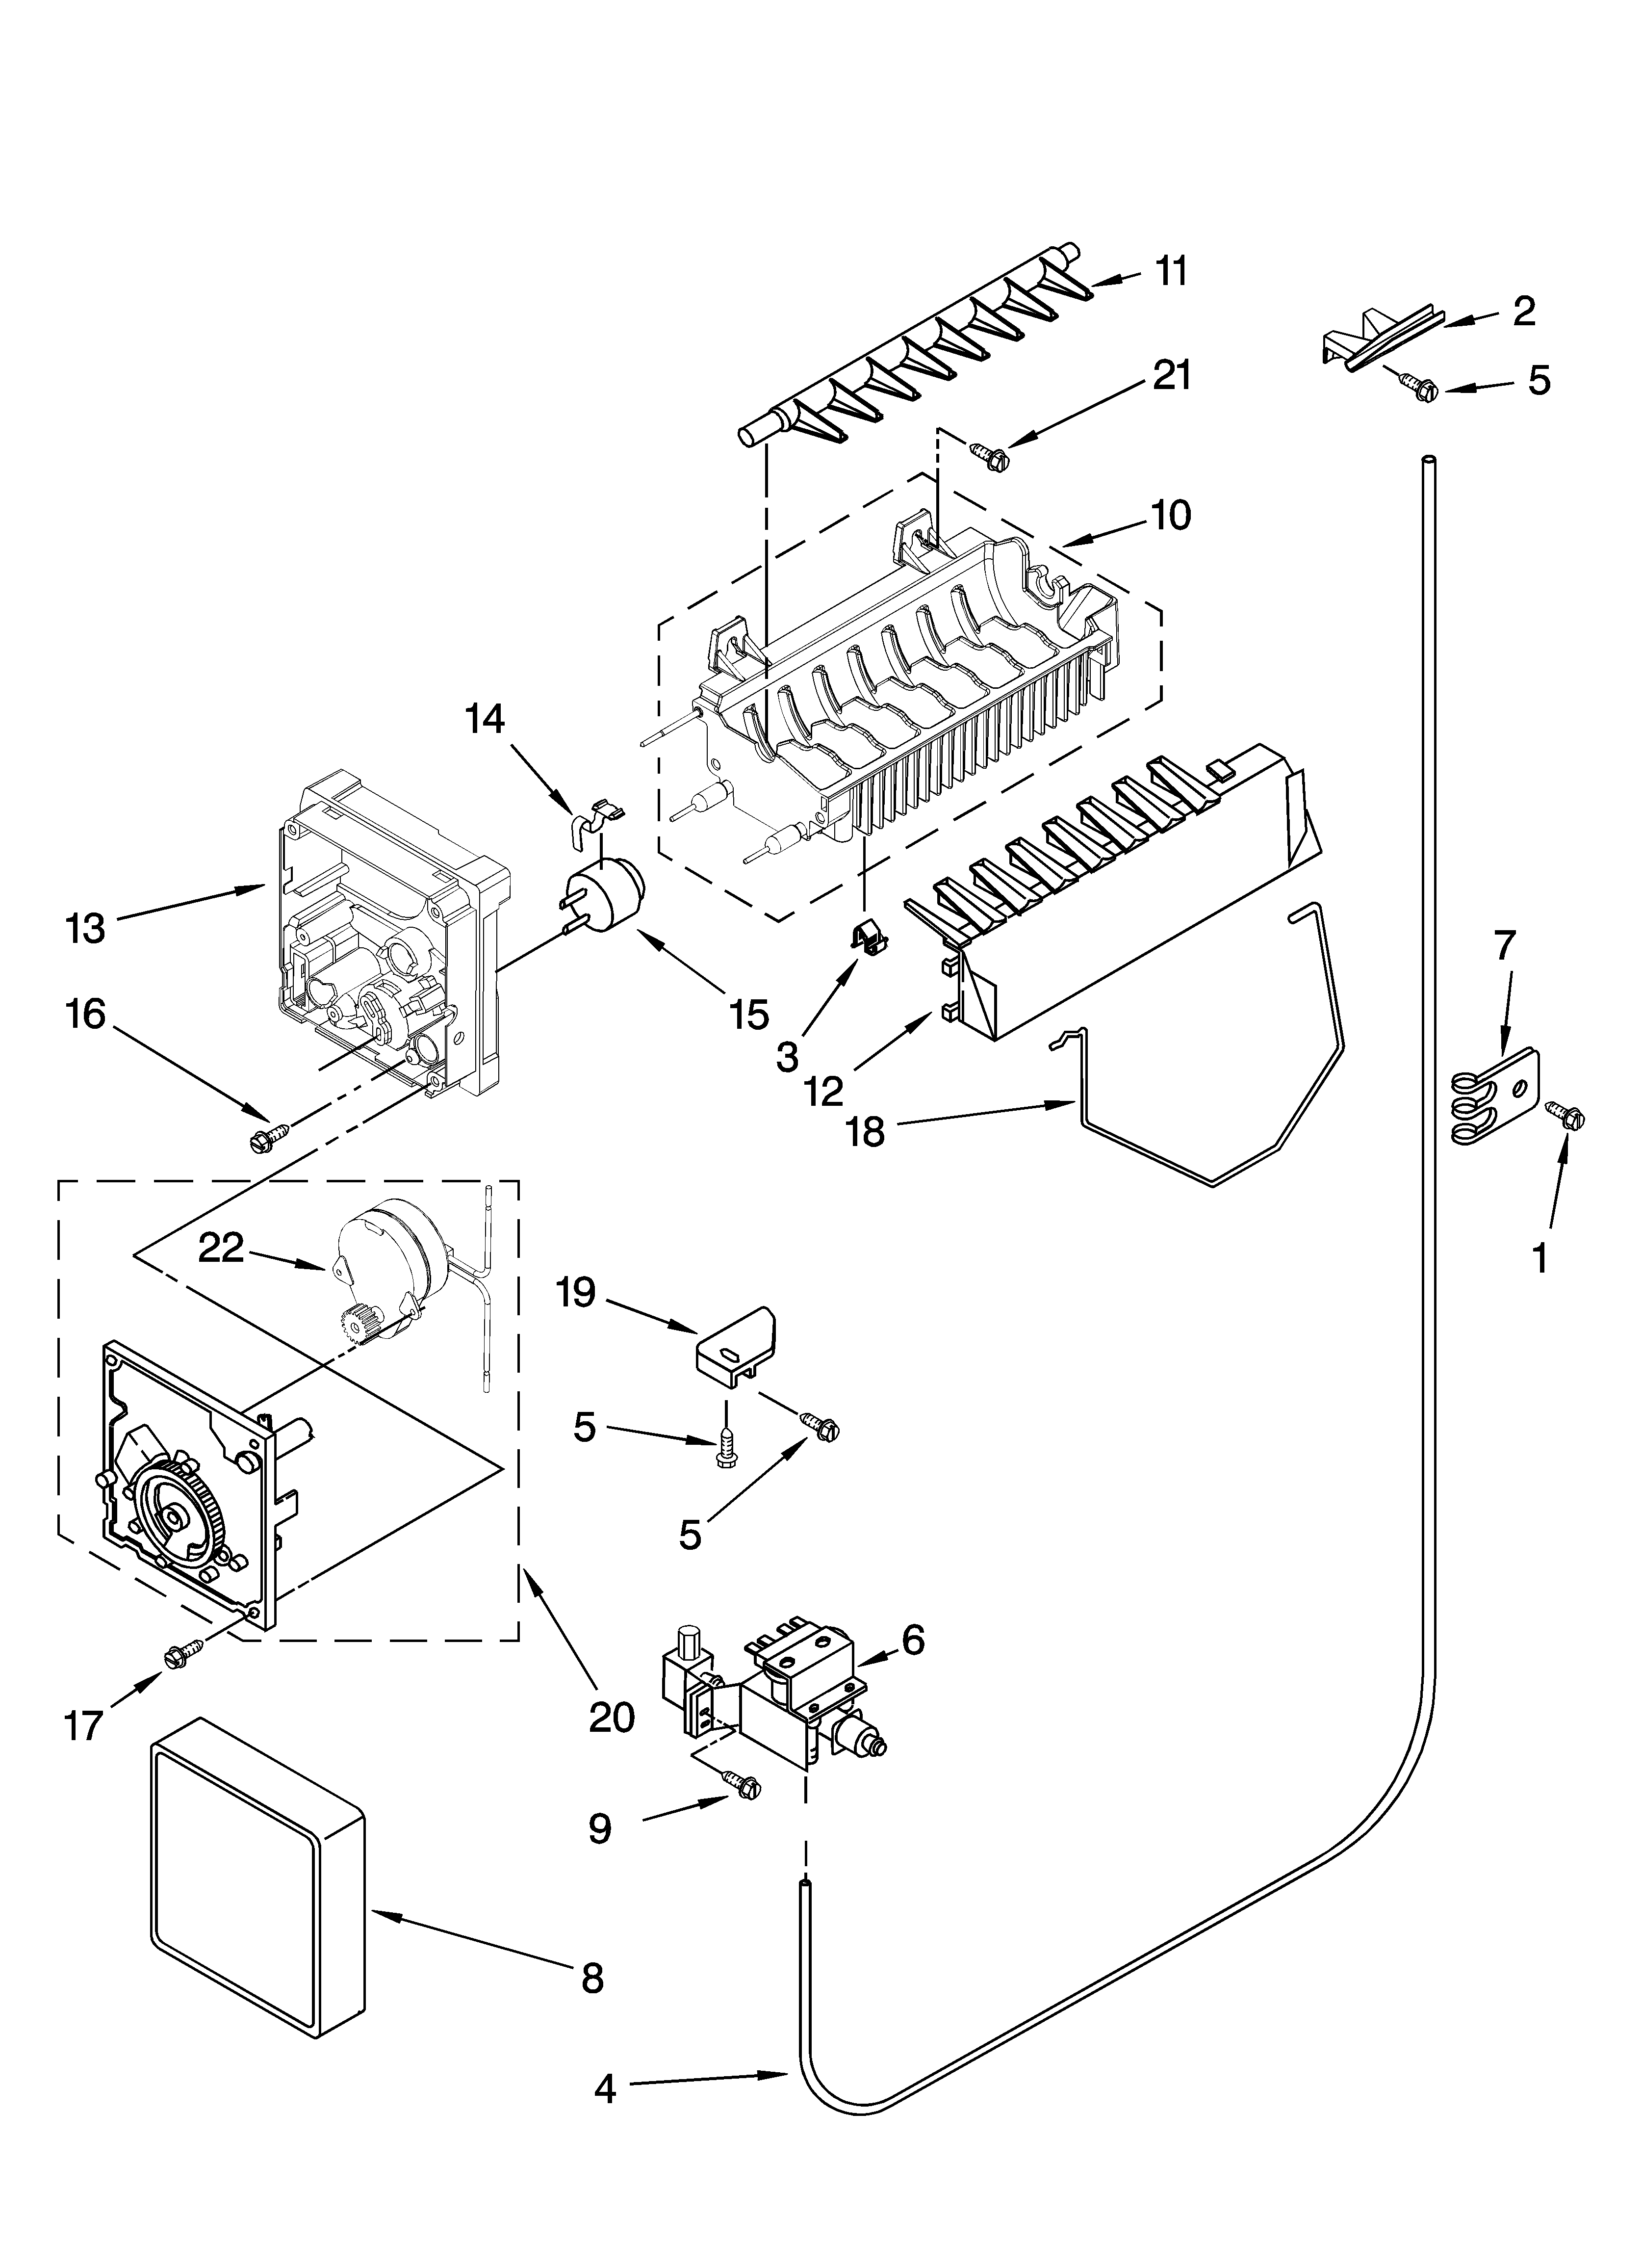 icemaker parts  optional parts  not included  diagram  u0026 parts list for model ed5kvexvb00